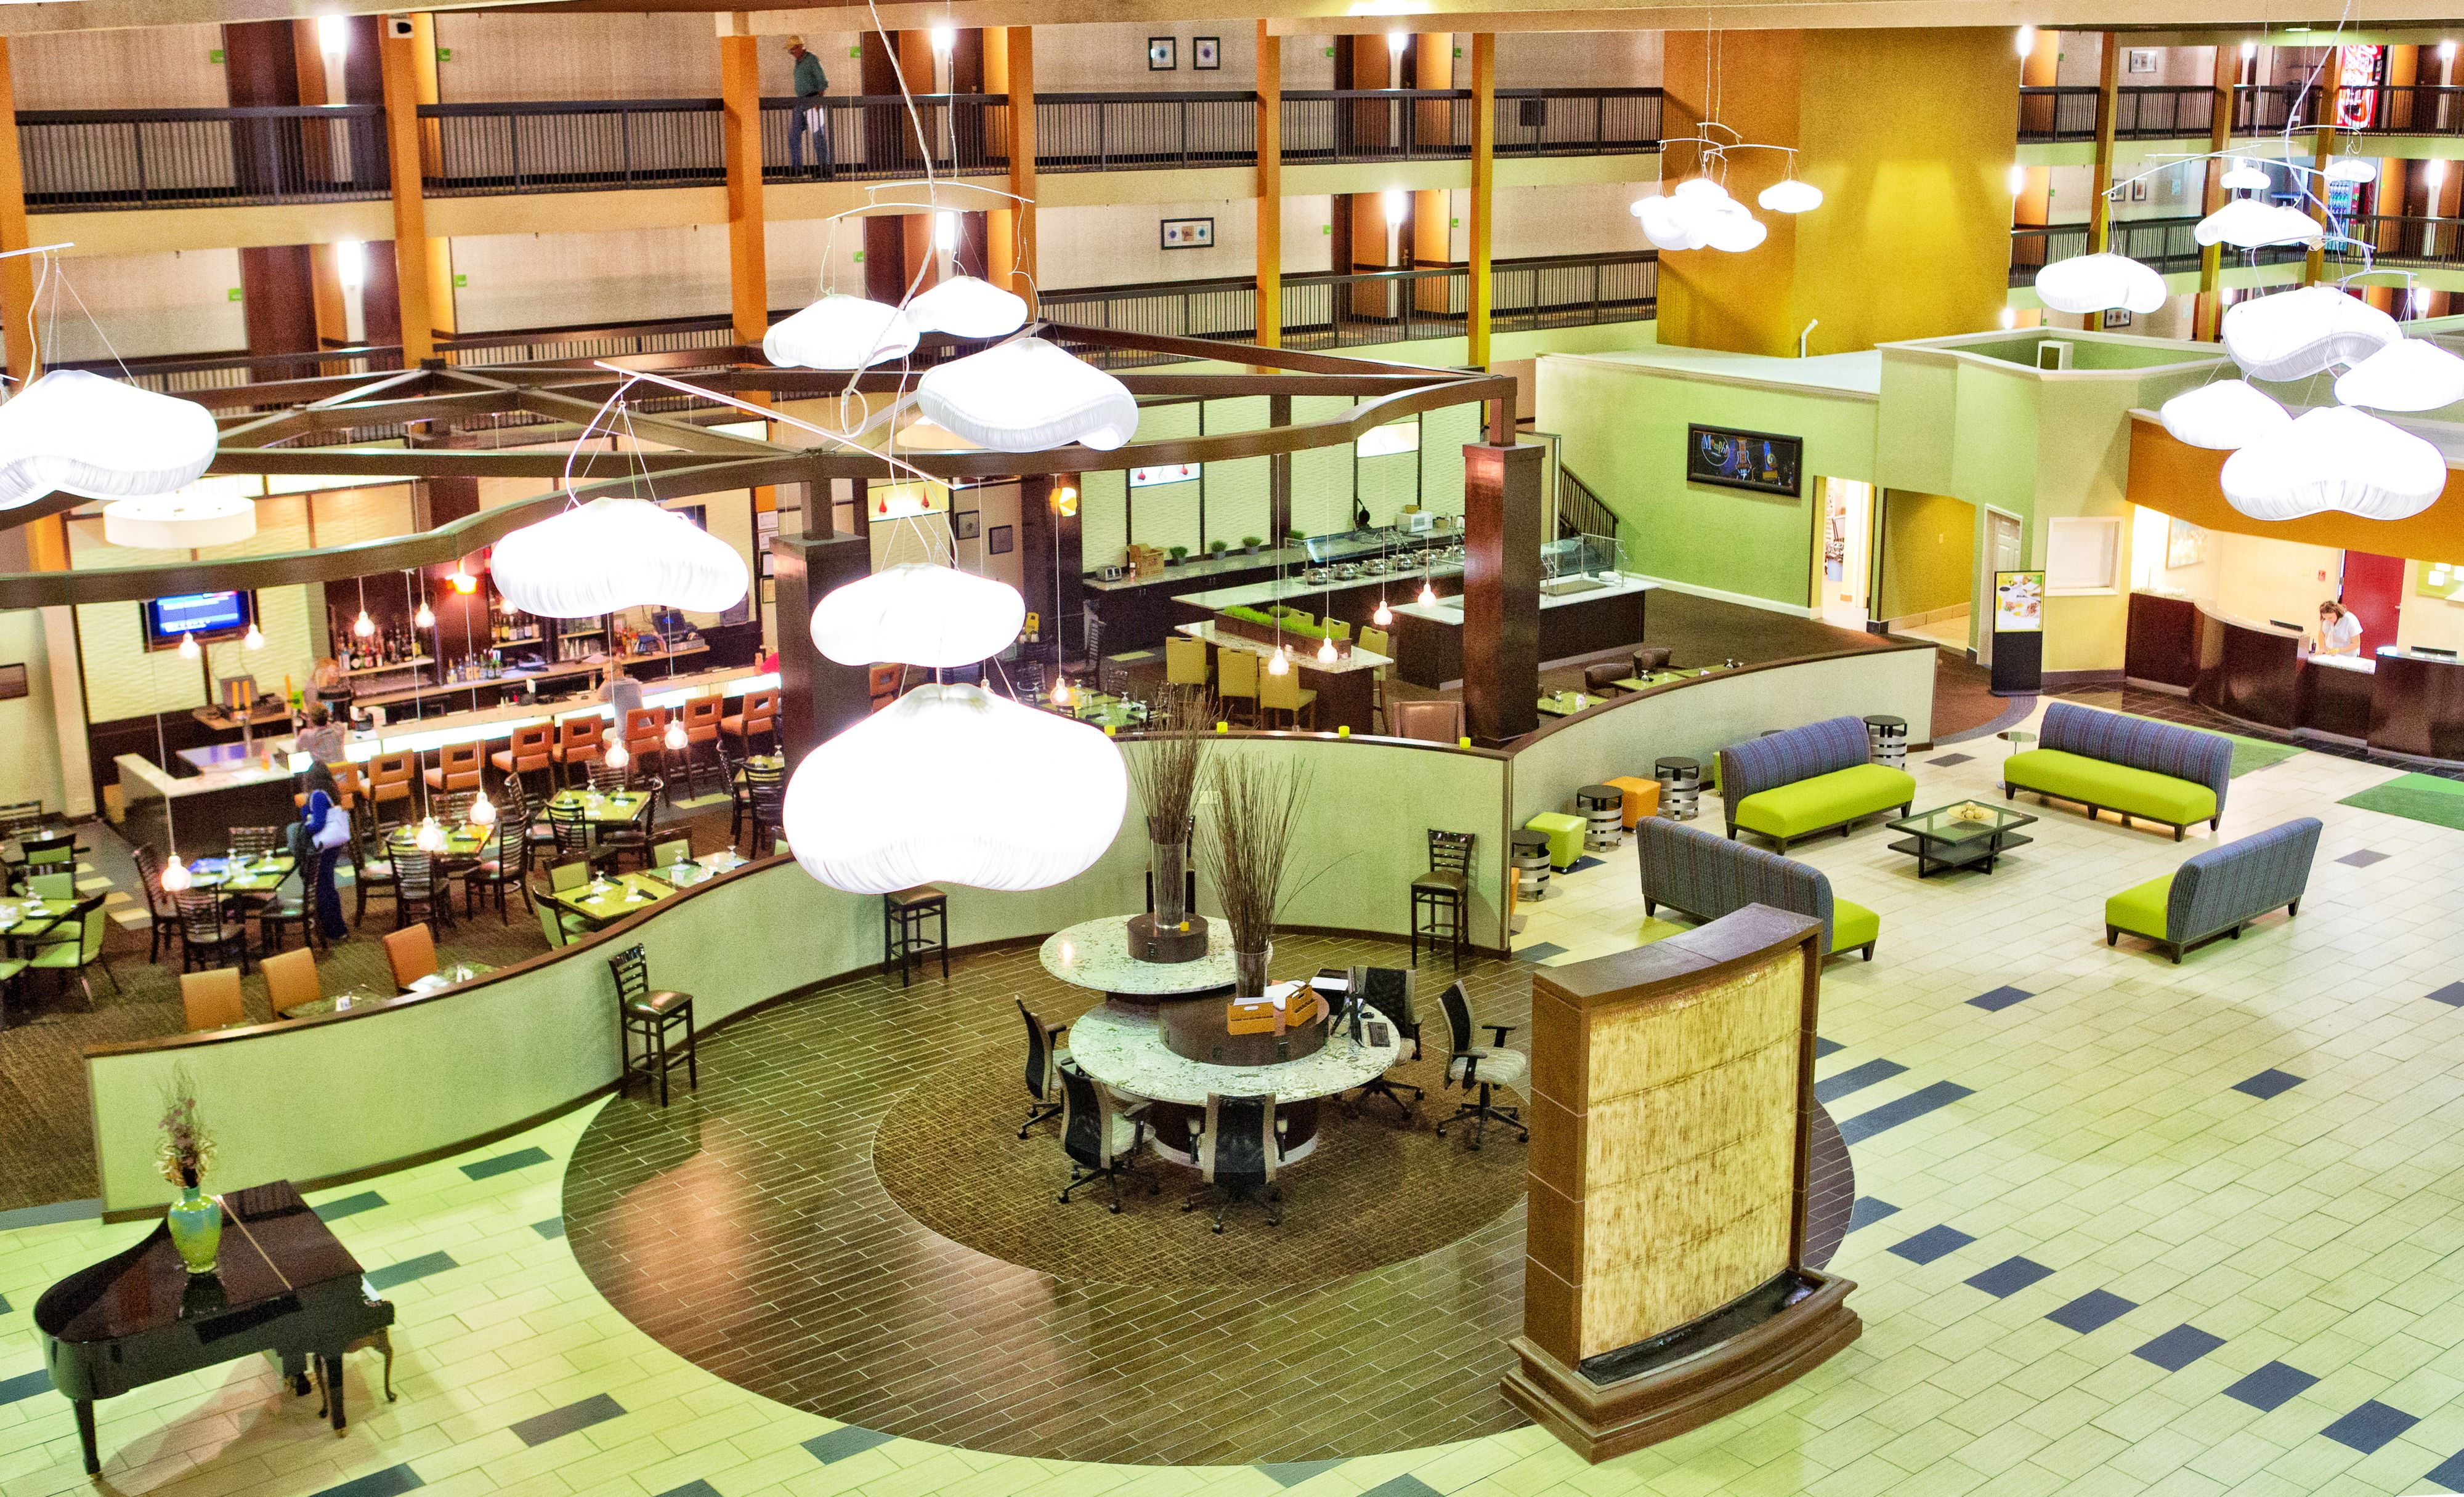 Holiday Inn Memphis Airport Conf Ctr Memphis Tennessee